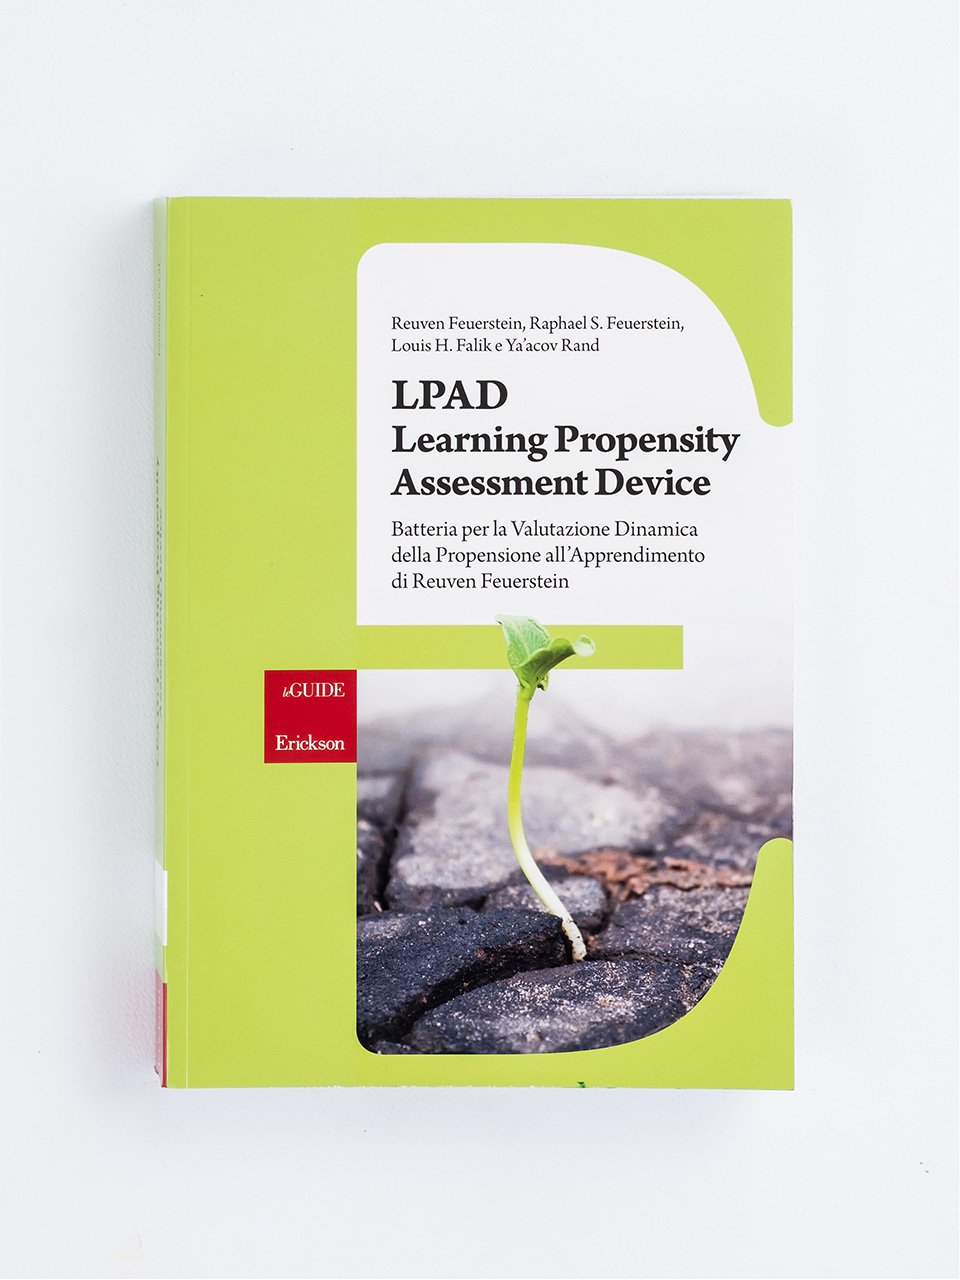 LPAD Learning Propensity Assessment Device - H - Libri - Erickson